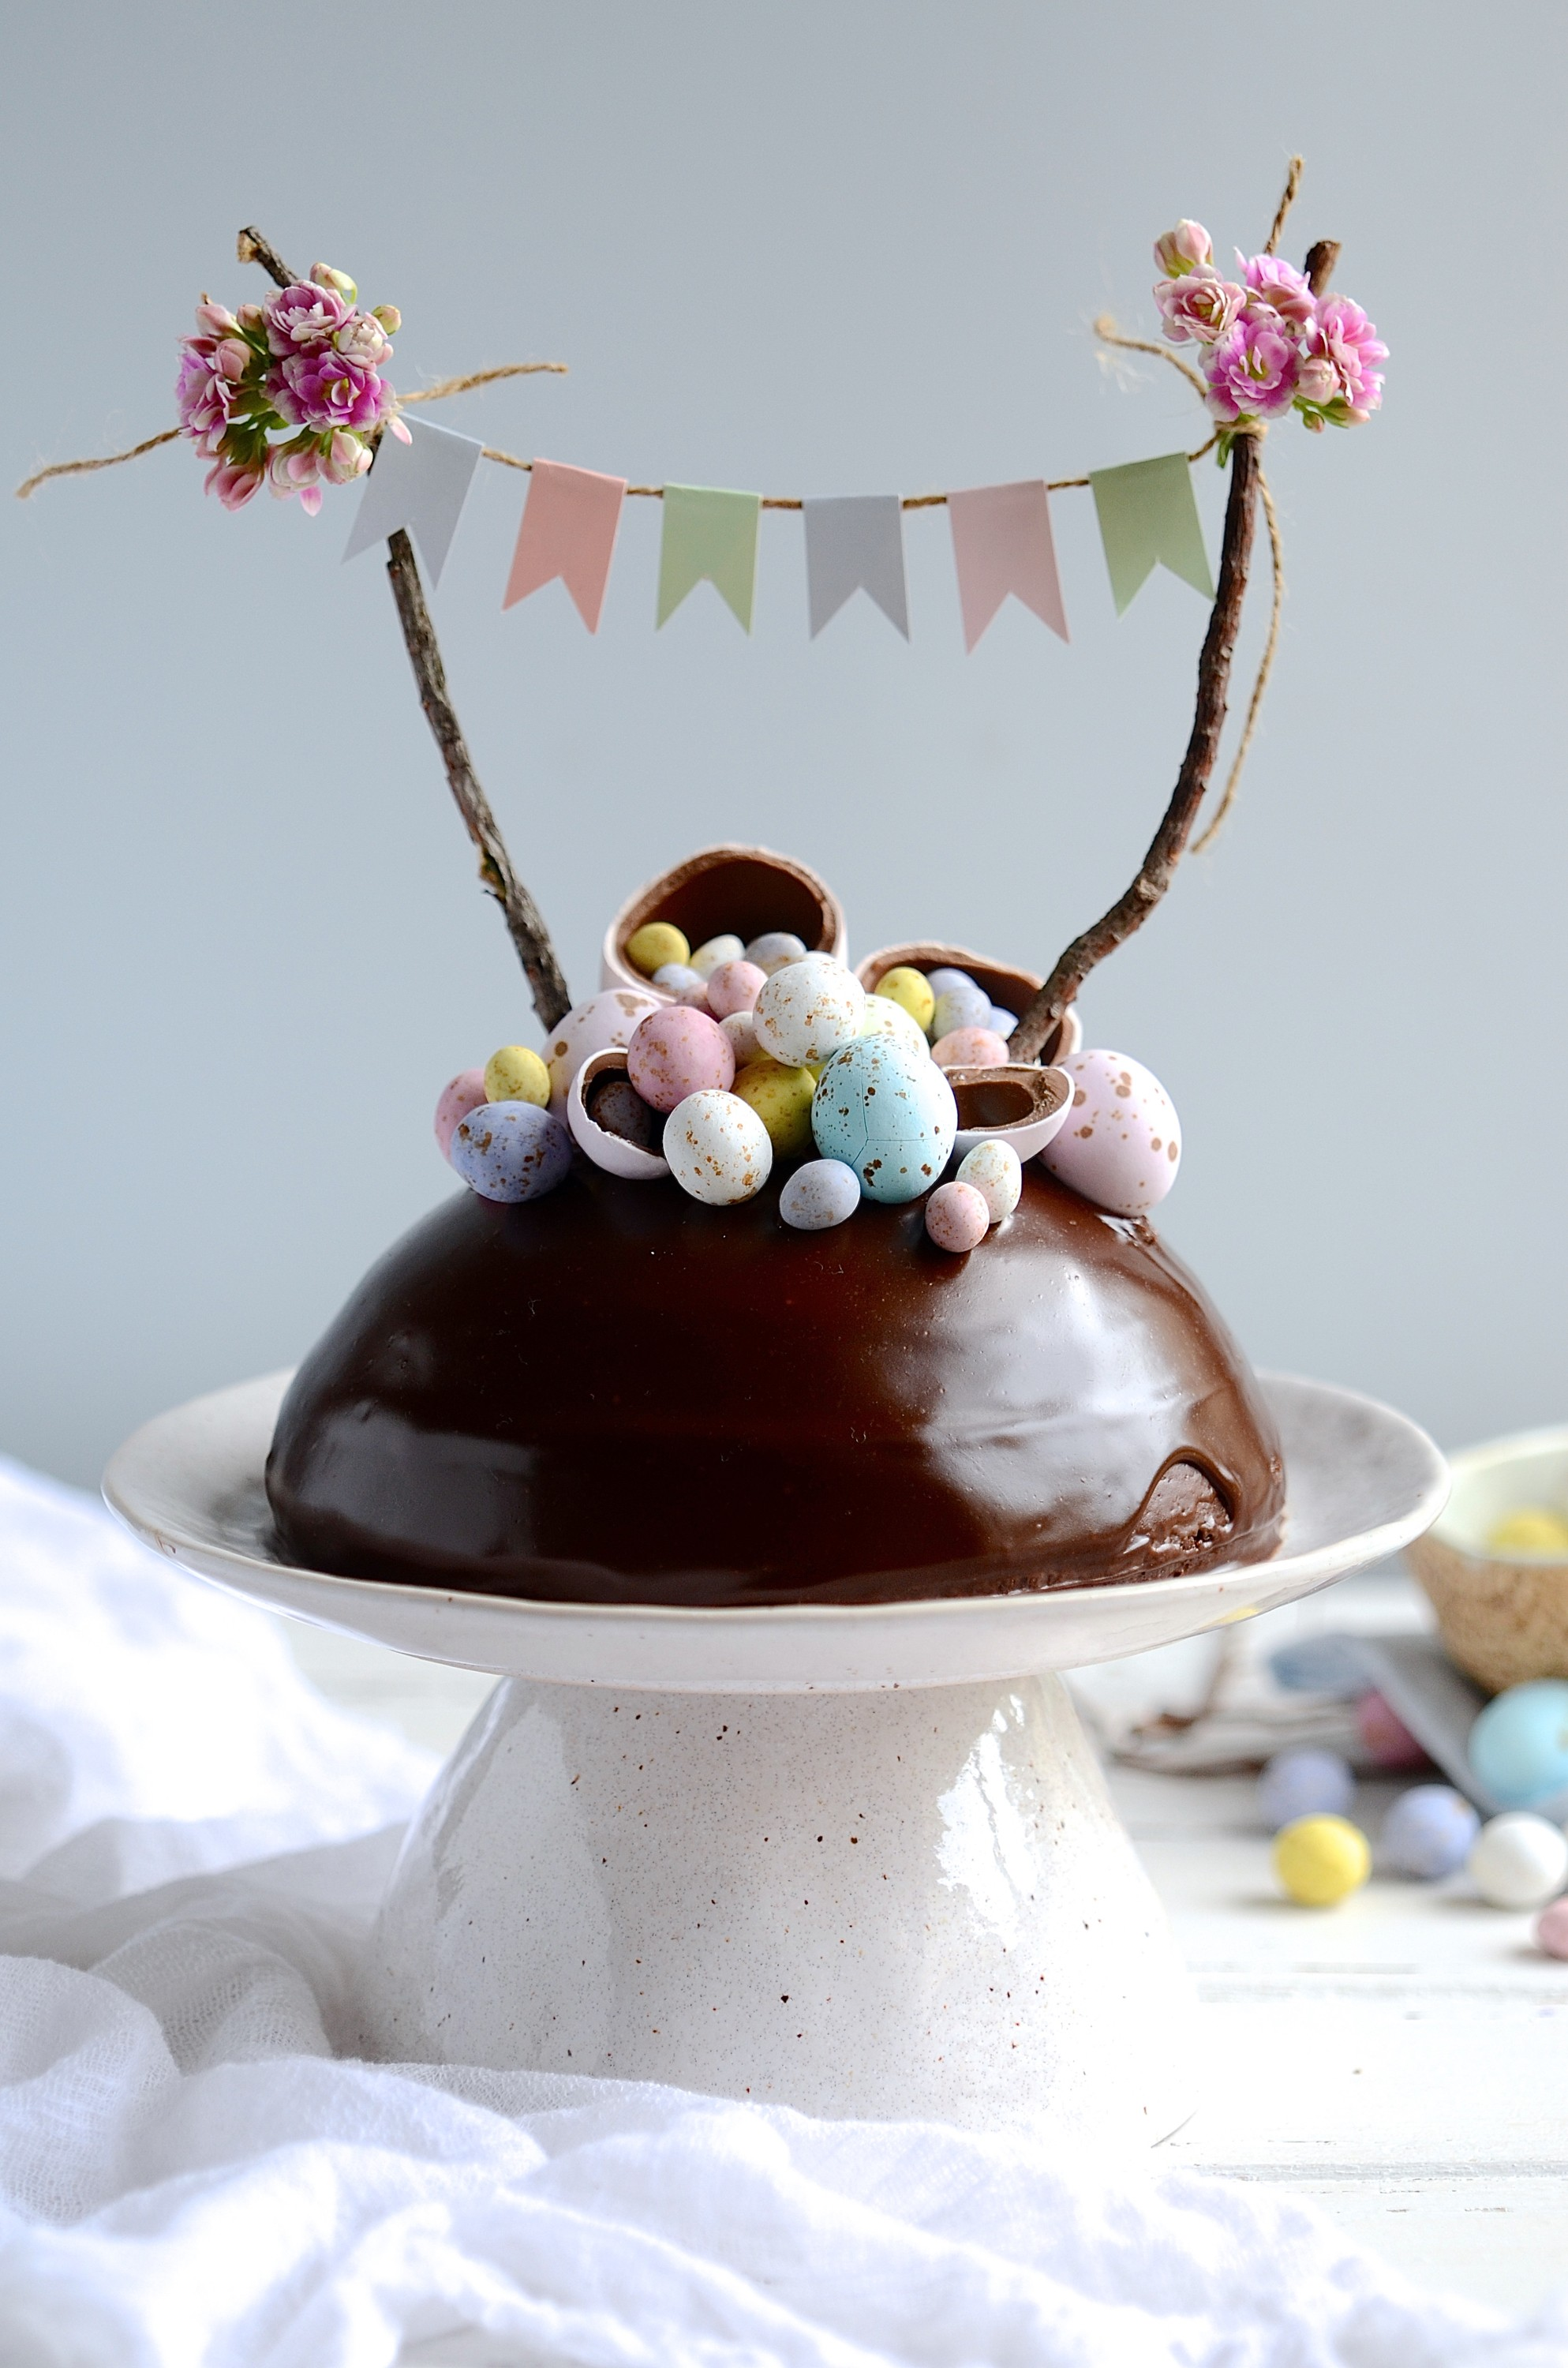 Chocolate Easter egg surprise cake | Bibbyskitchen recipes | Easter baking